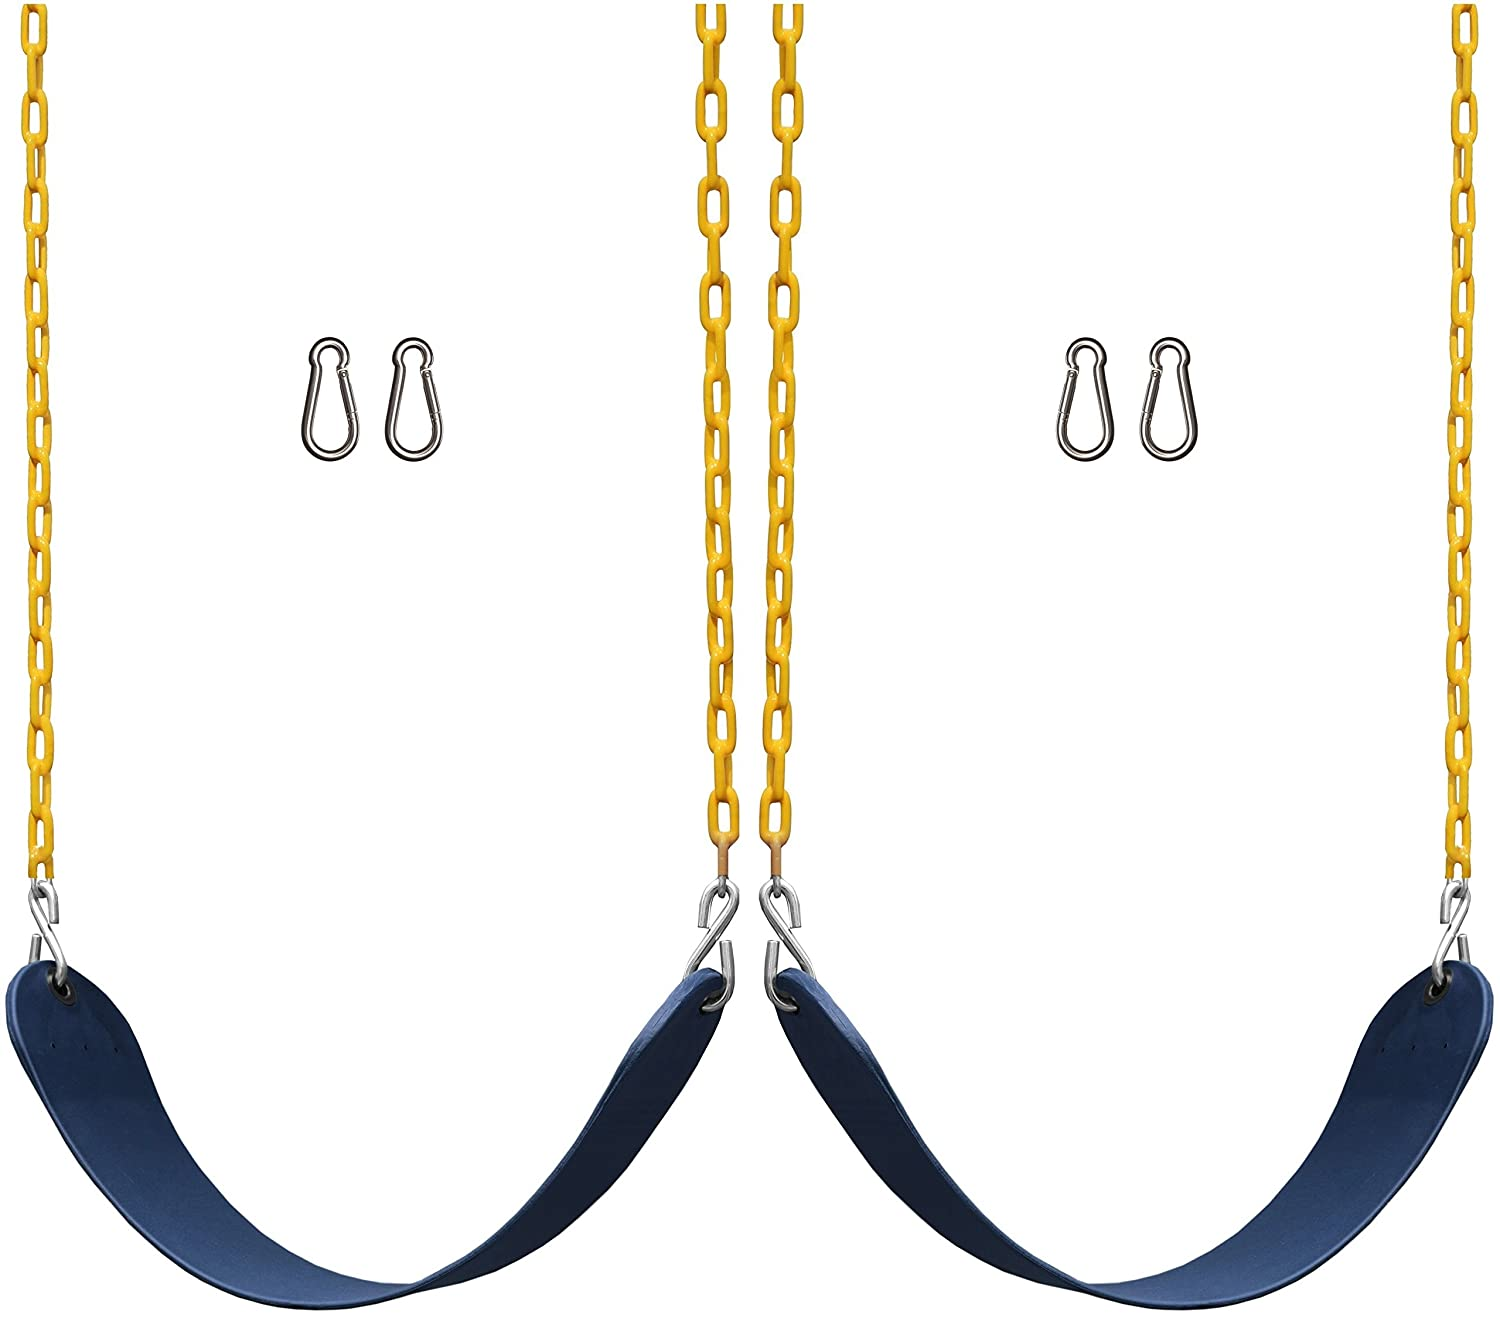 Jungle Gym Kingdom 2 Pack Swings Seats Heavy Duty 66 Chain Plastic Coated - Playground Swing Set Accessories Replacement Snap Hooks (Blue)